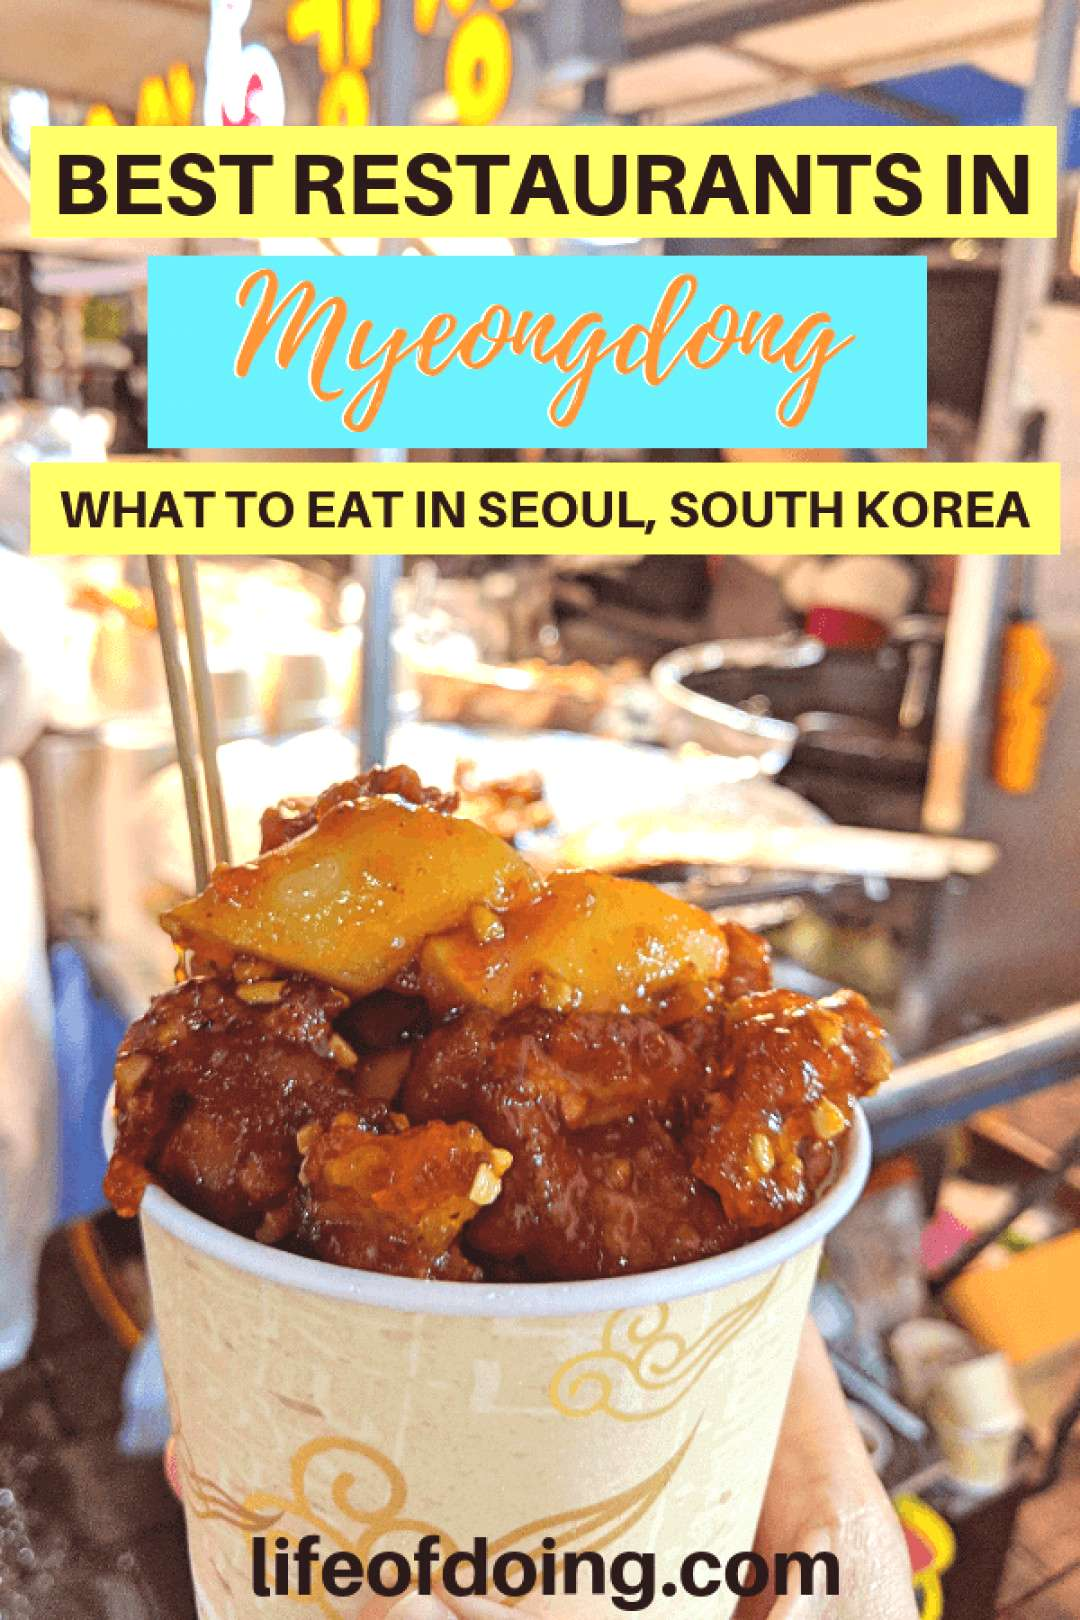 Seoul Best Restaurants in Myeongdong To Satisfy Food Cravings - Best places to eat in Myeongdong